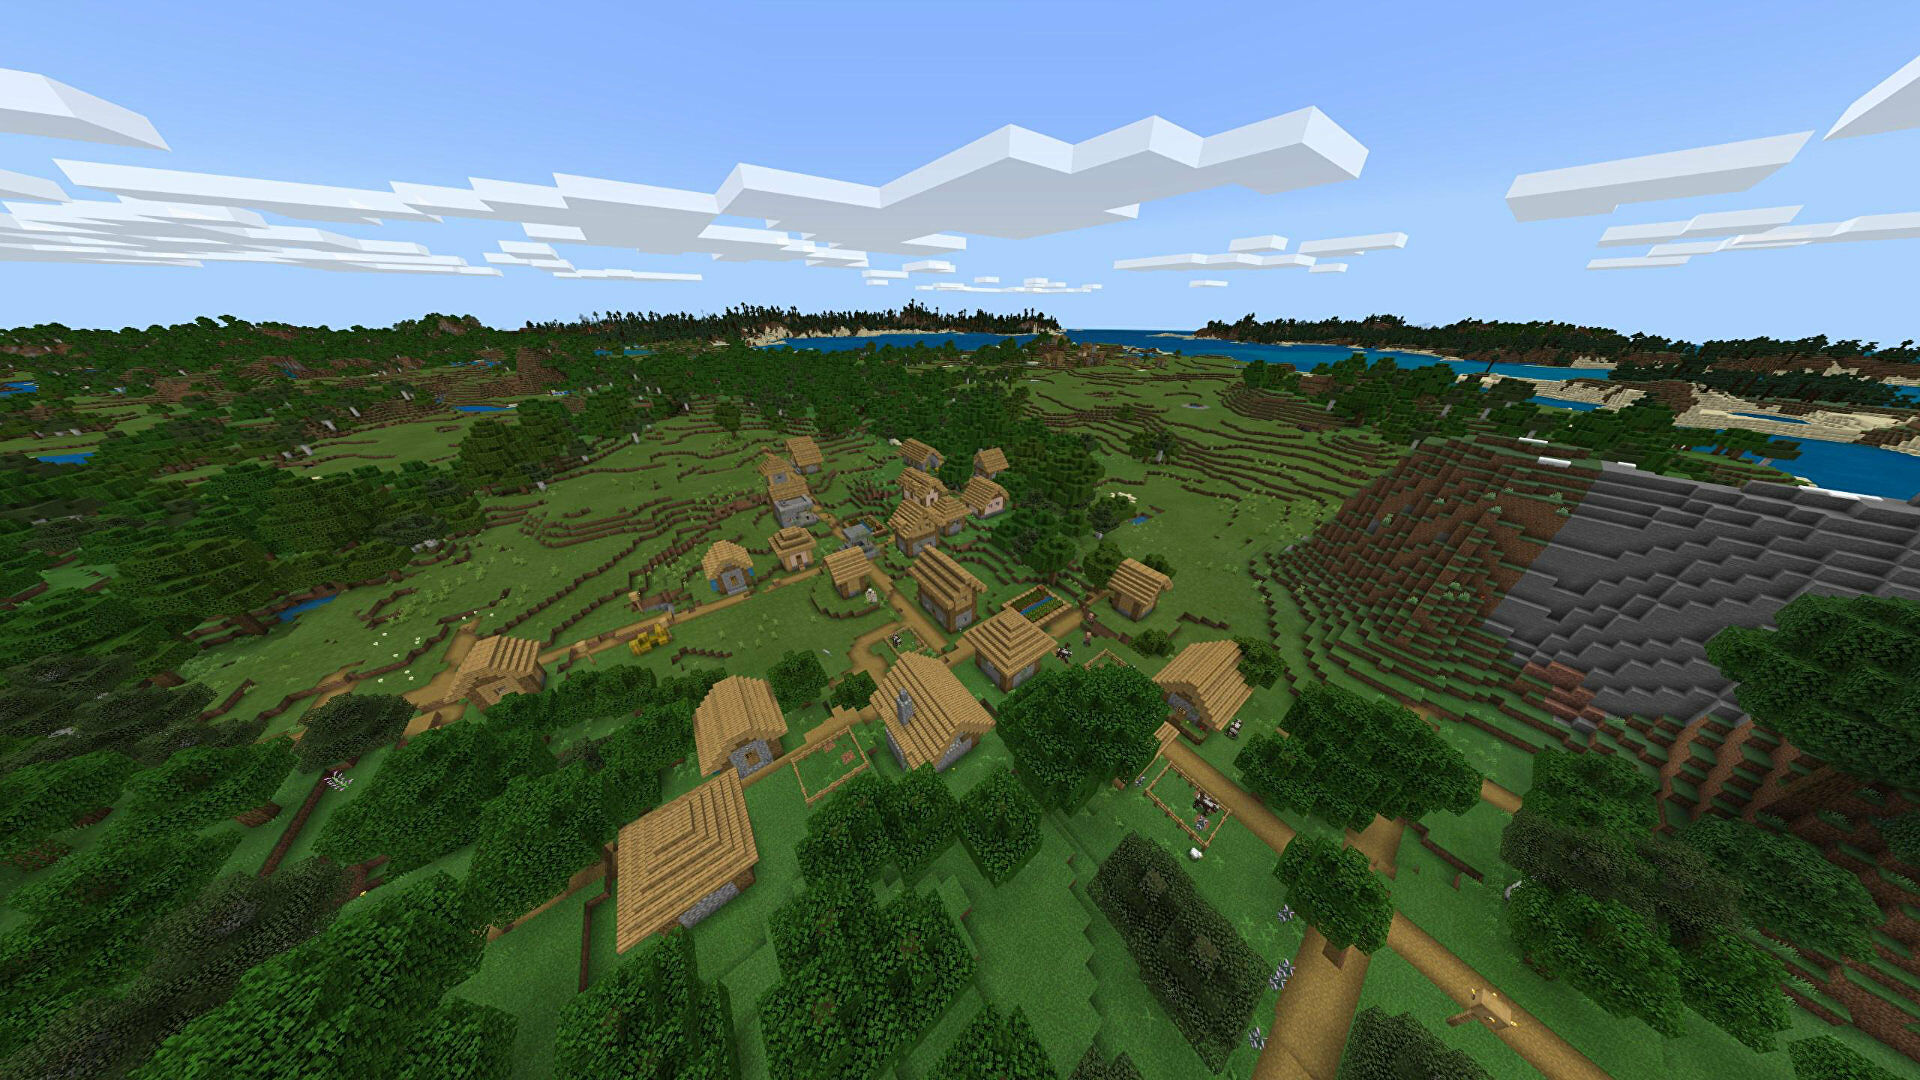 A Minecraft Bedrock screenshot of a new world created with the seed -850418298.